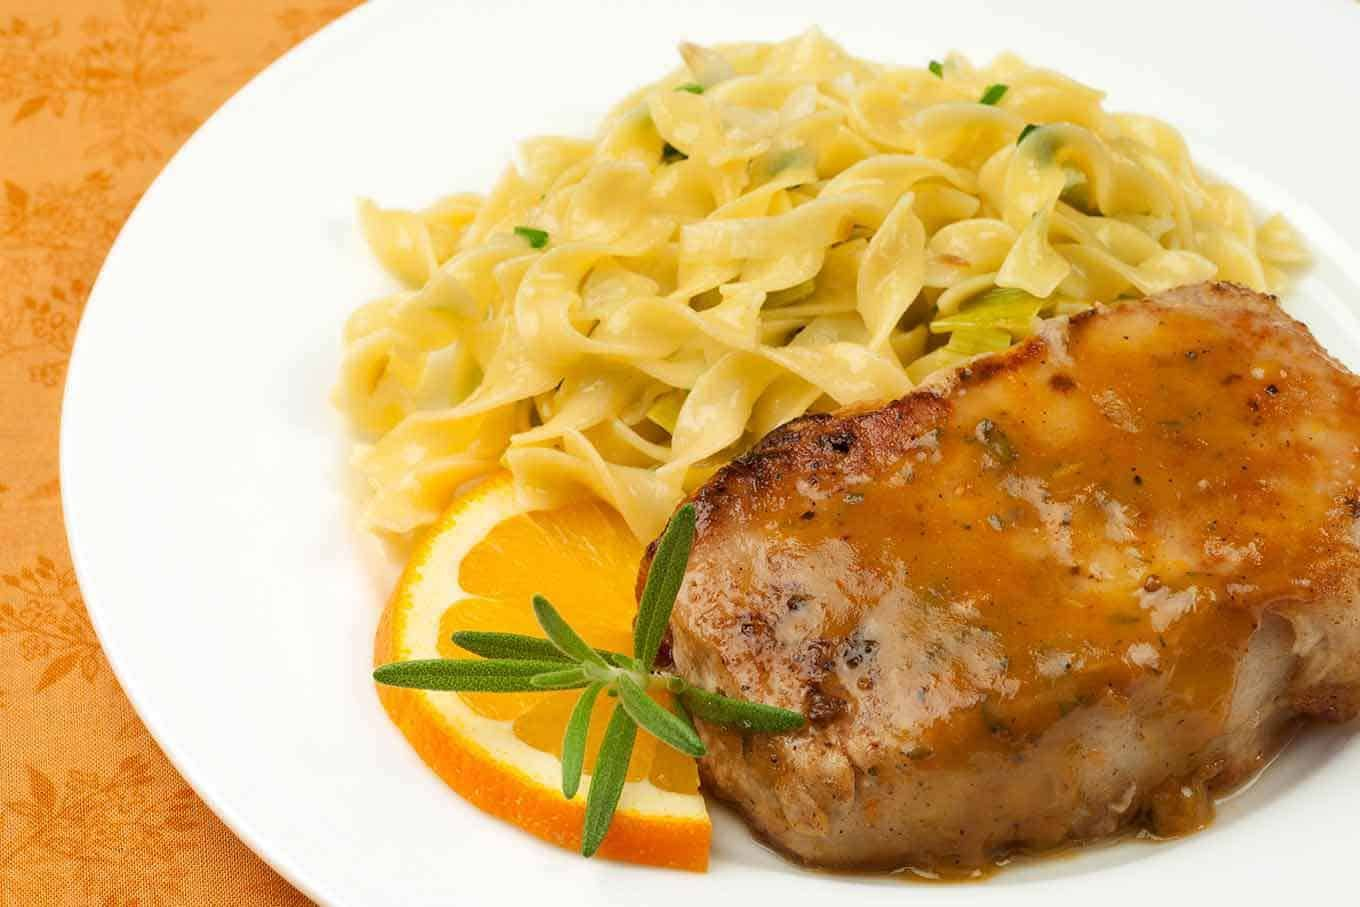 Orange And Rosemary Sauced Pork A flavorful pan sauce made from orange juice, Dijon-style mustard, honey and rosemary takes pork cutlets from dull to delicious with very little effort.